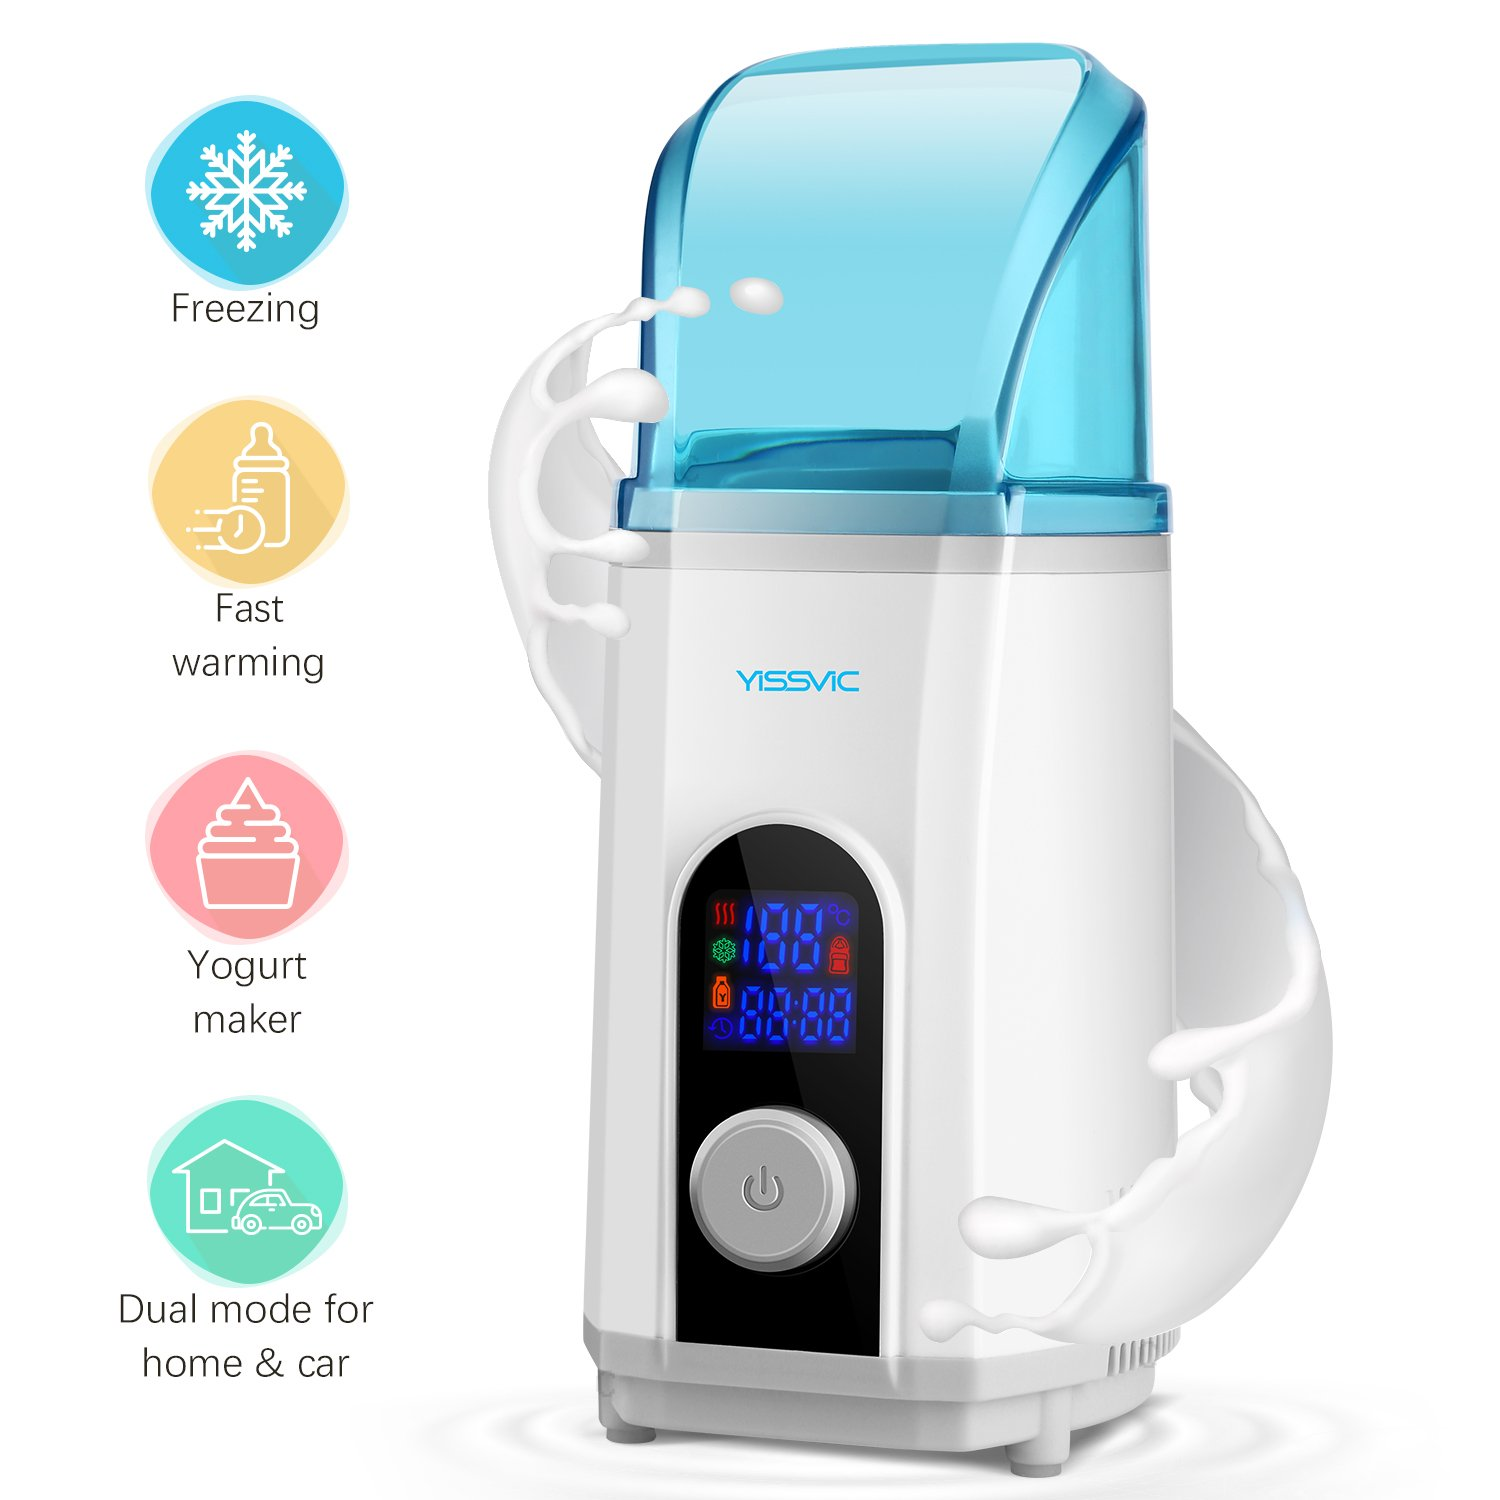 Baby Bottle Warmer Cooler Yogurt Maker 3 in 1 with LED Display for Home and Car Use (450ml) by YISSVIC (Blue) Earthly Paradise